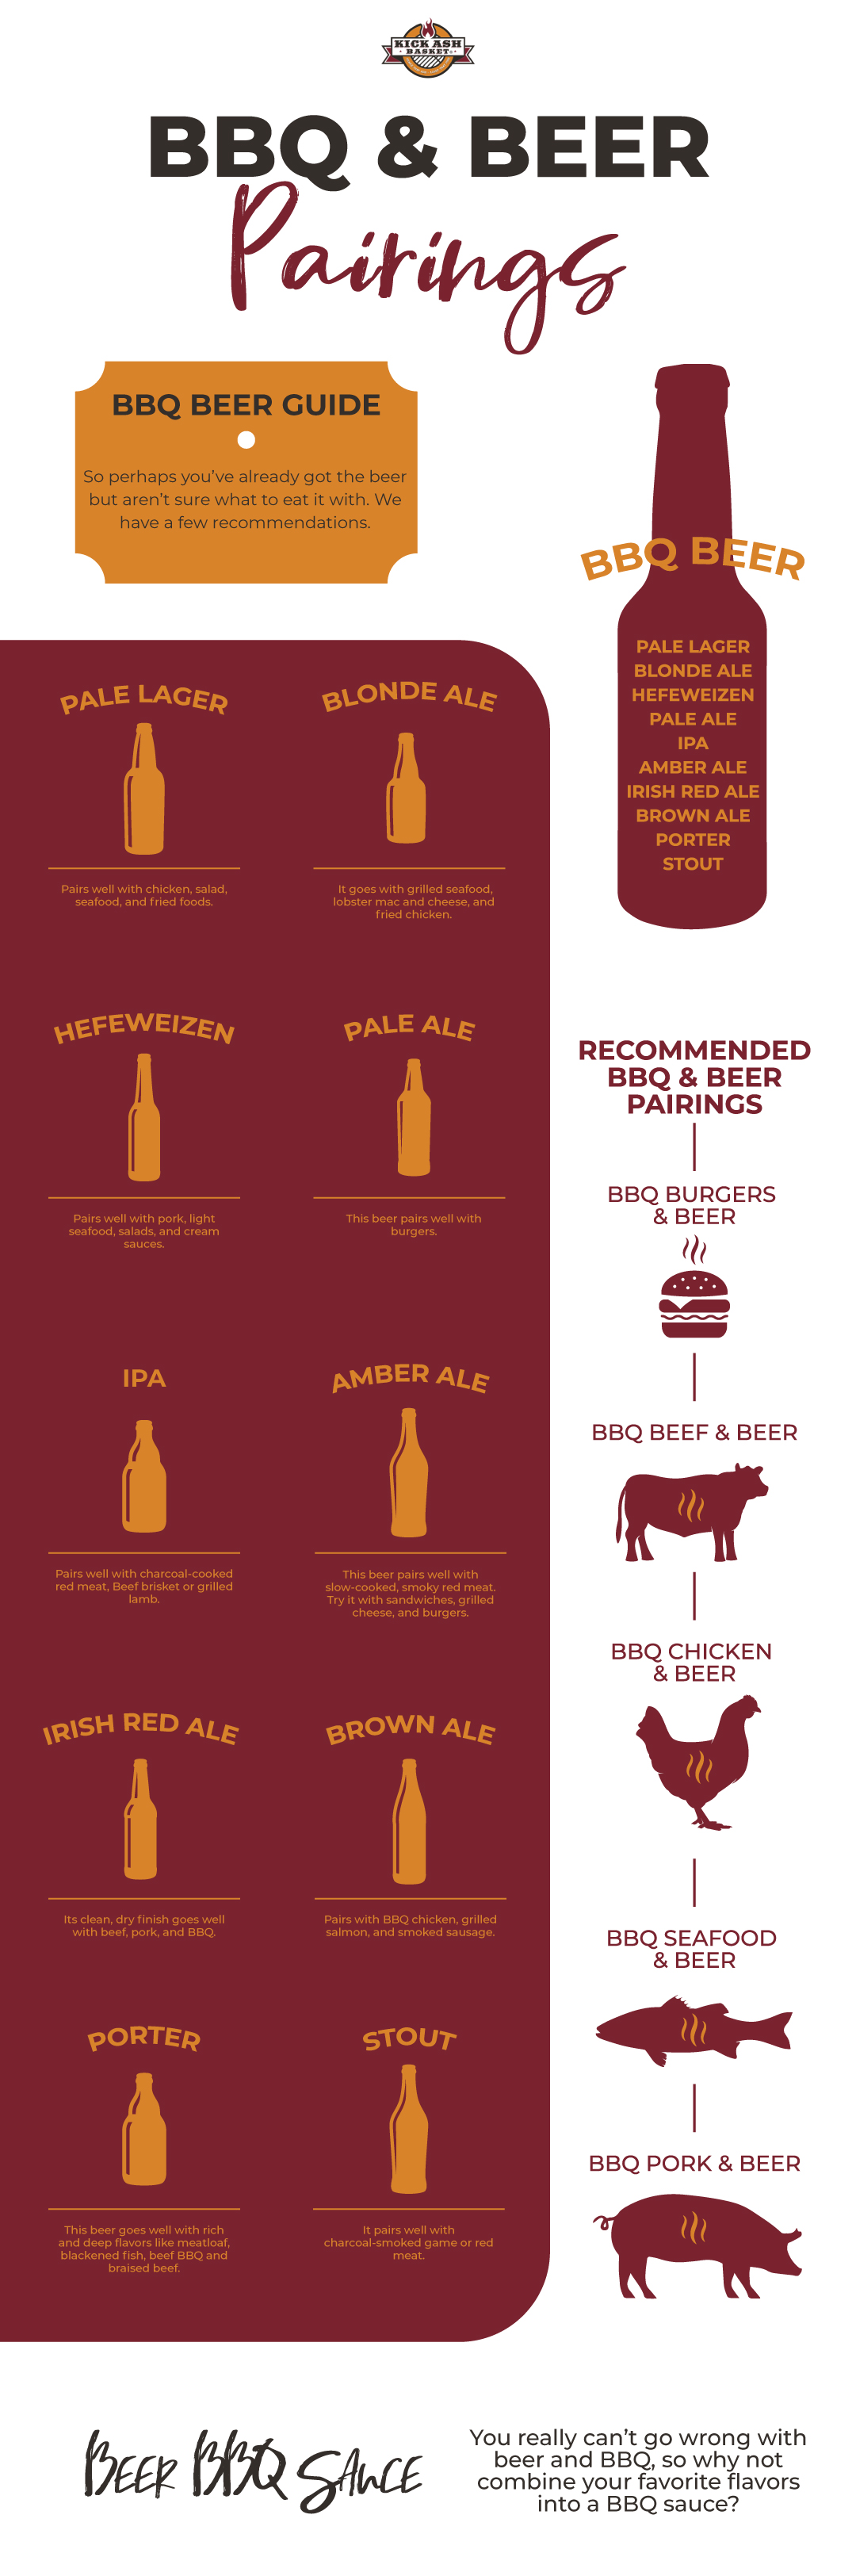 bbq beer image guide